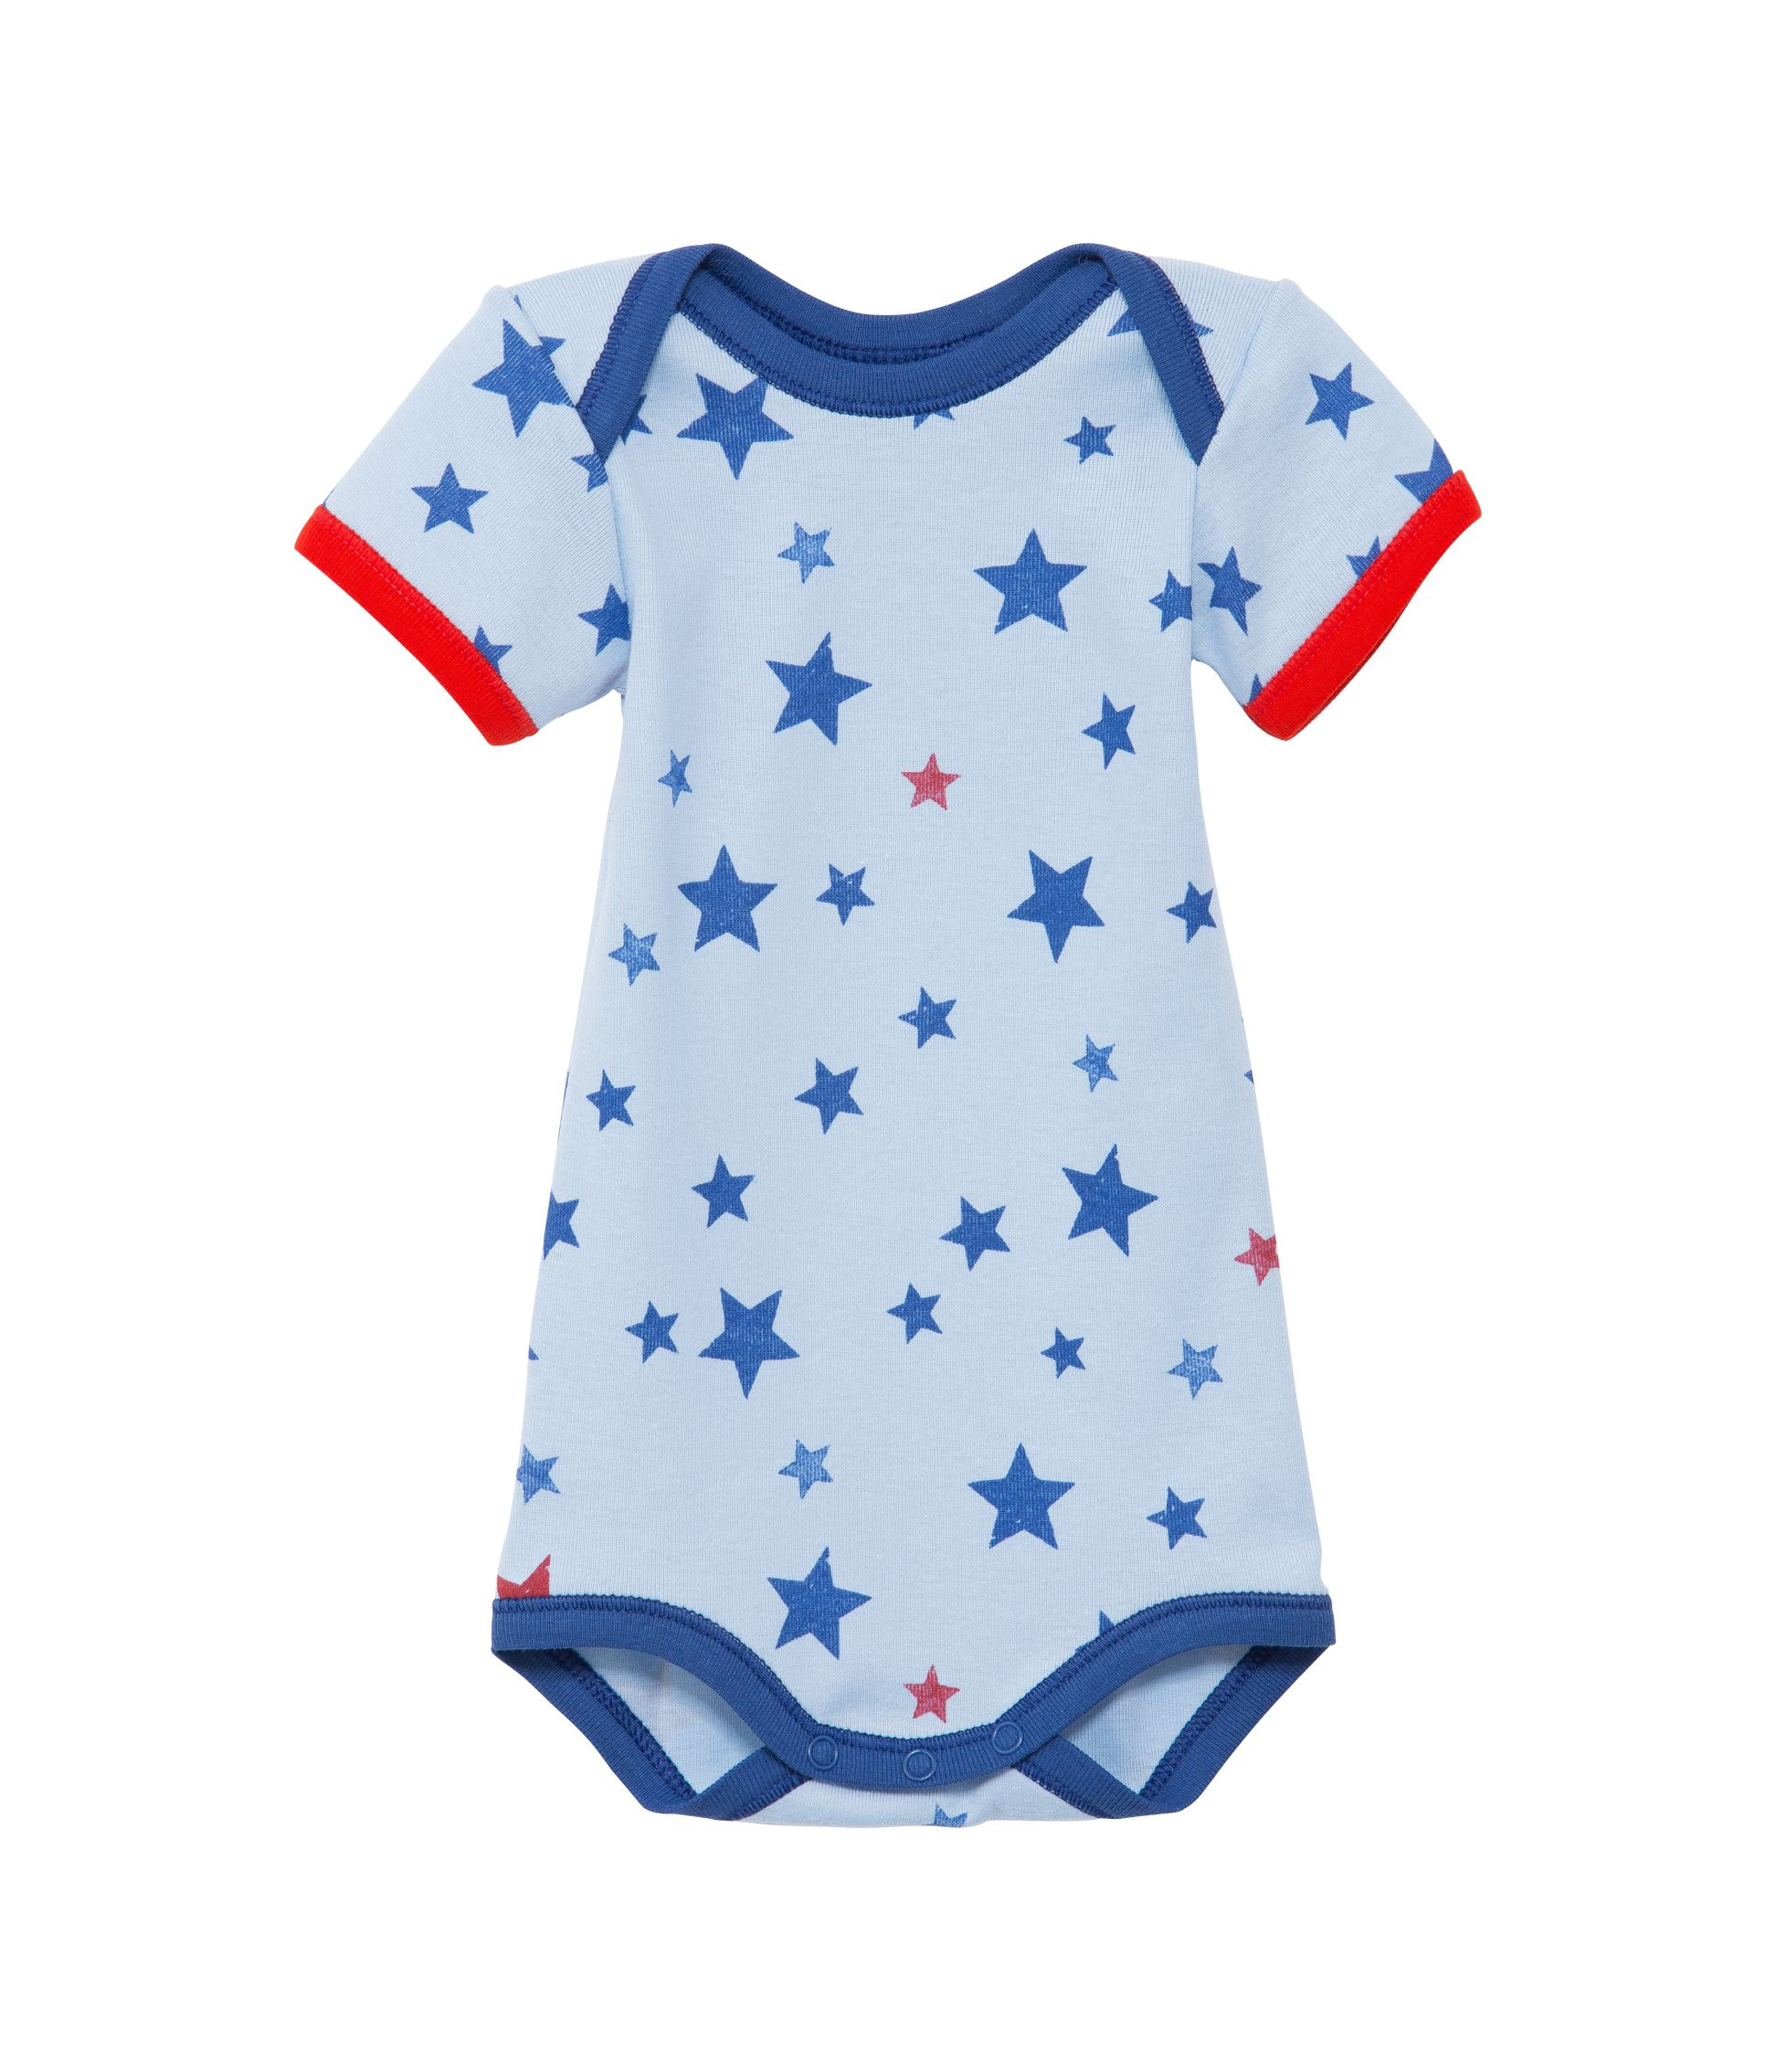 Baby boys star print short sleeve bodysuit